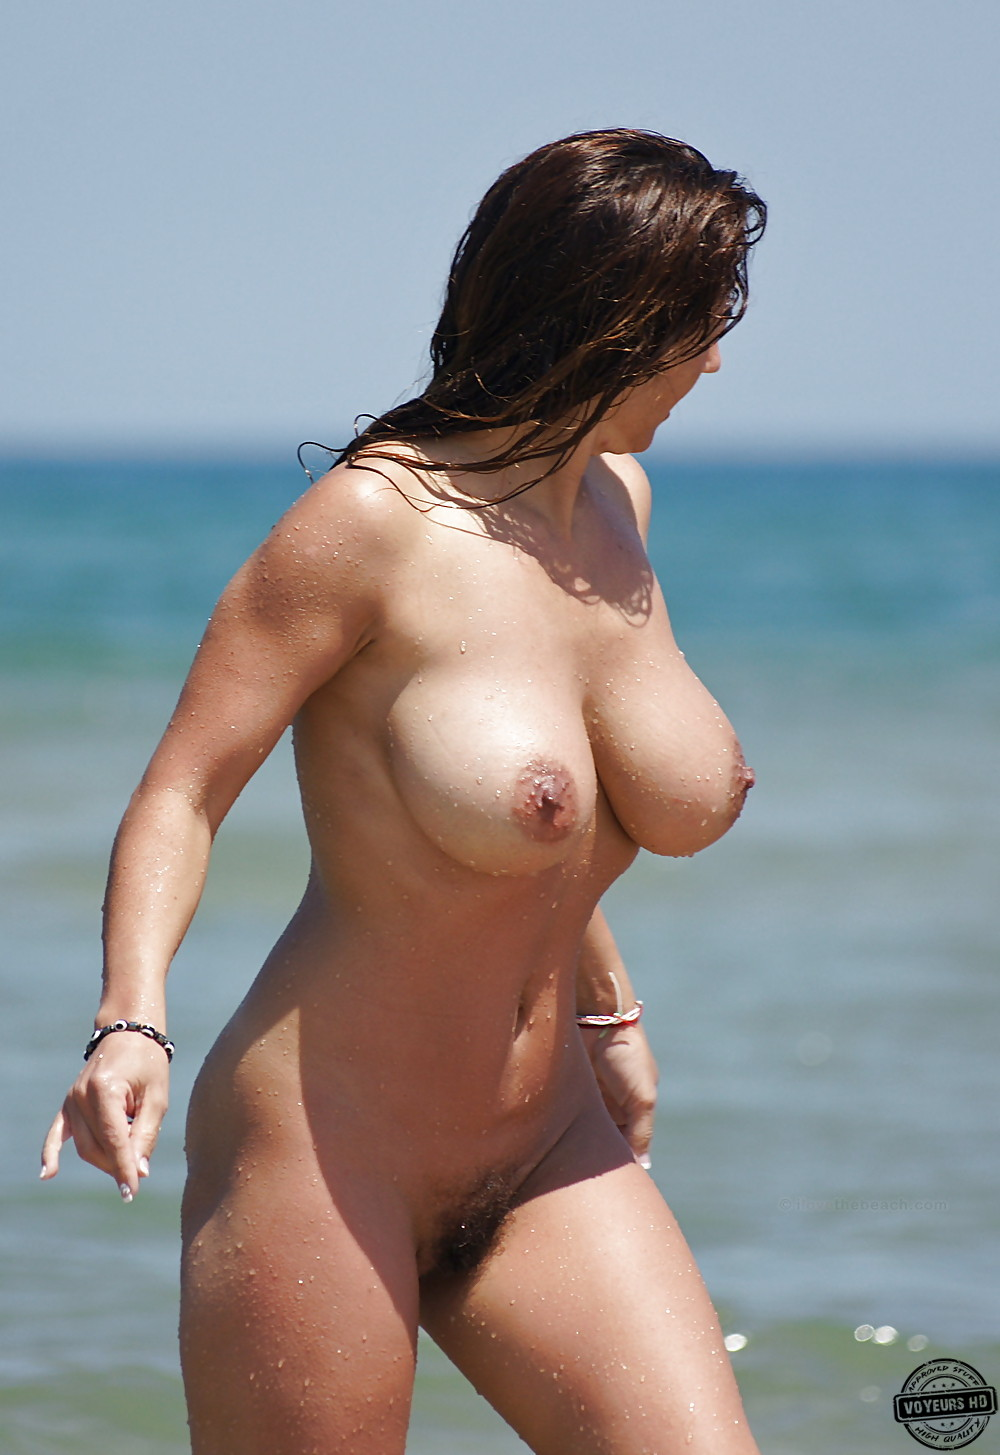 Milf With Big Tits At The Beach - Voyeur Videos-1752